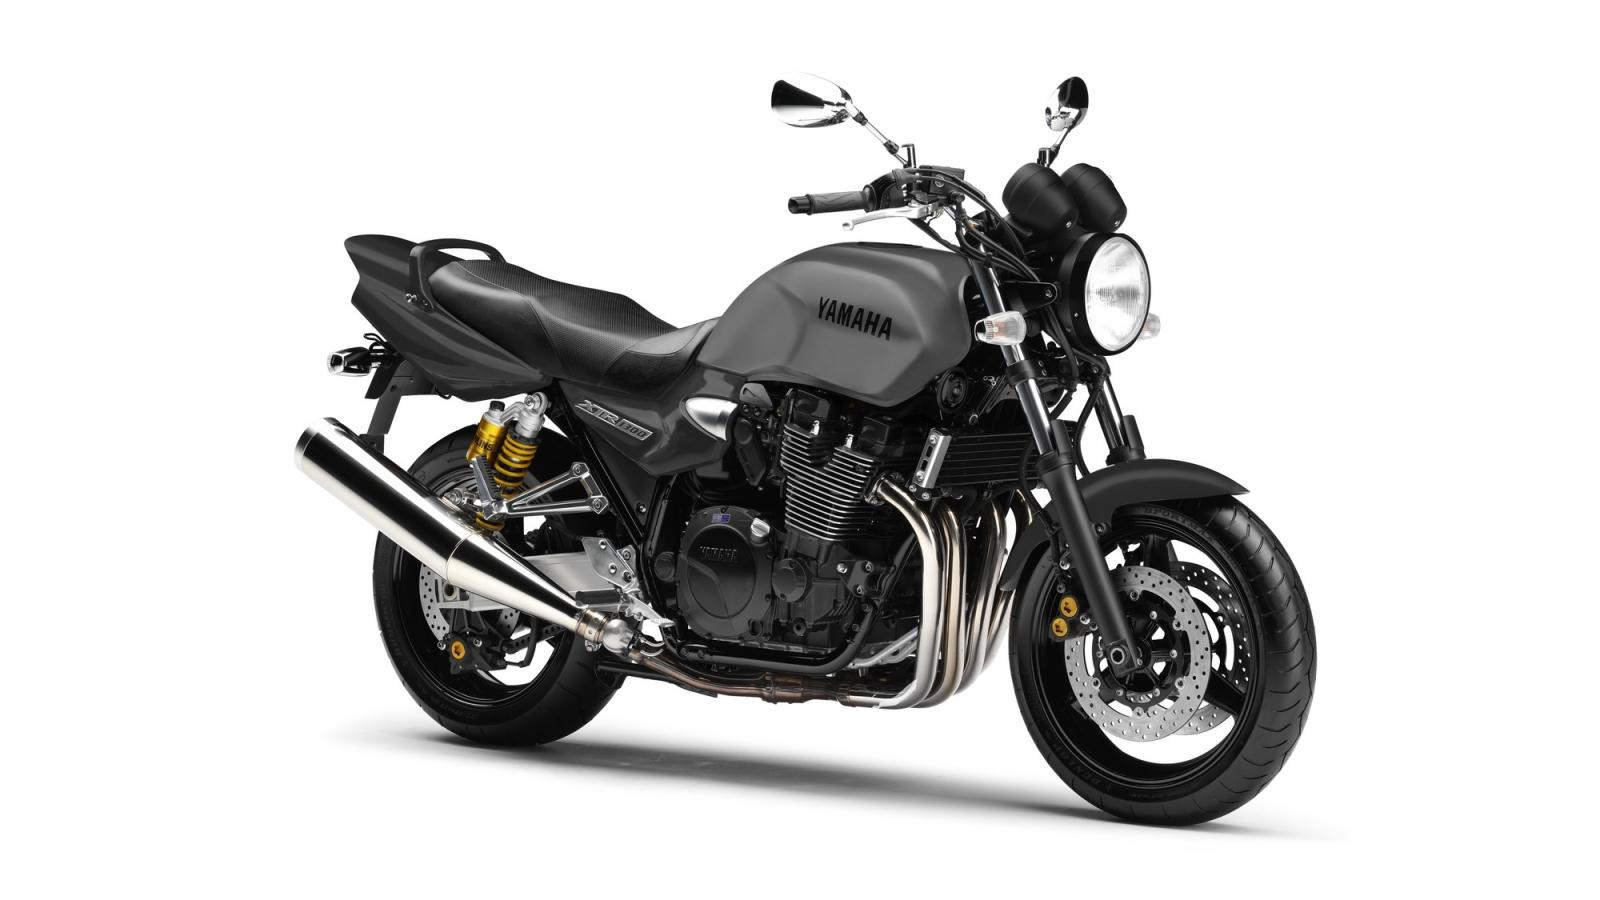 2014 yamaha xjr 1300 moto zombdrive com. Black Bedroom Furniture Sets. Home Design Ideas